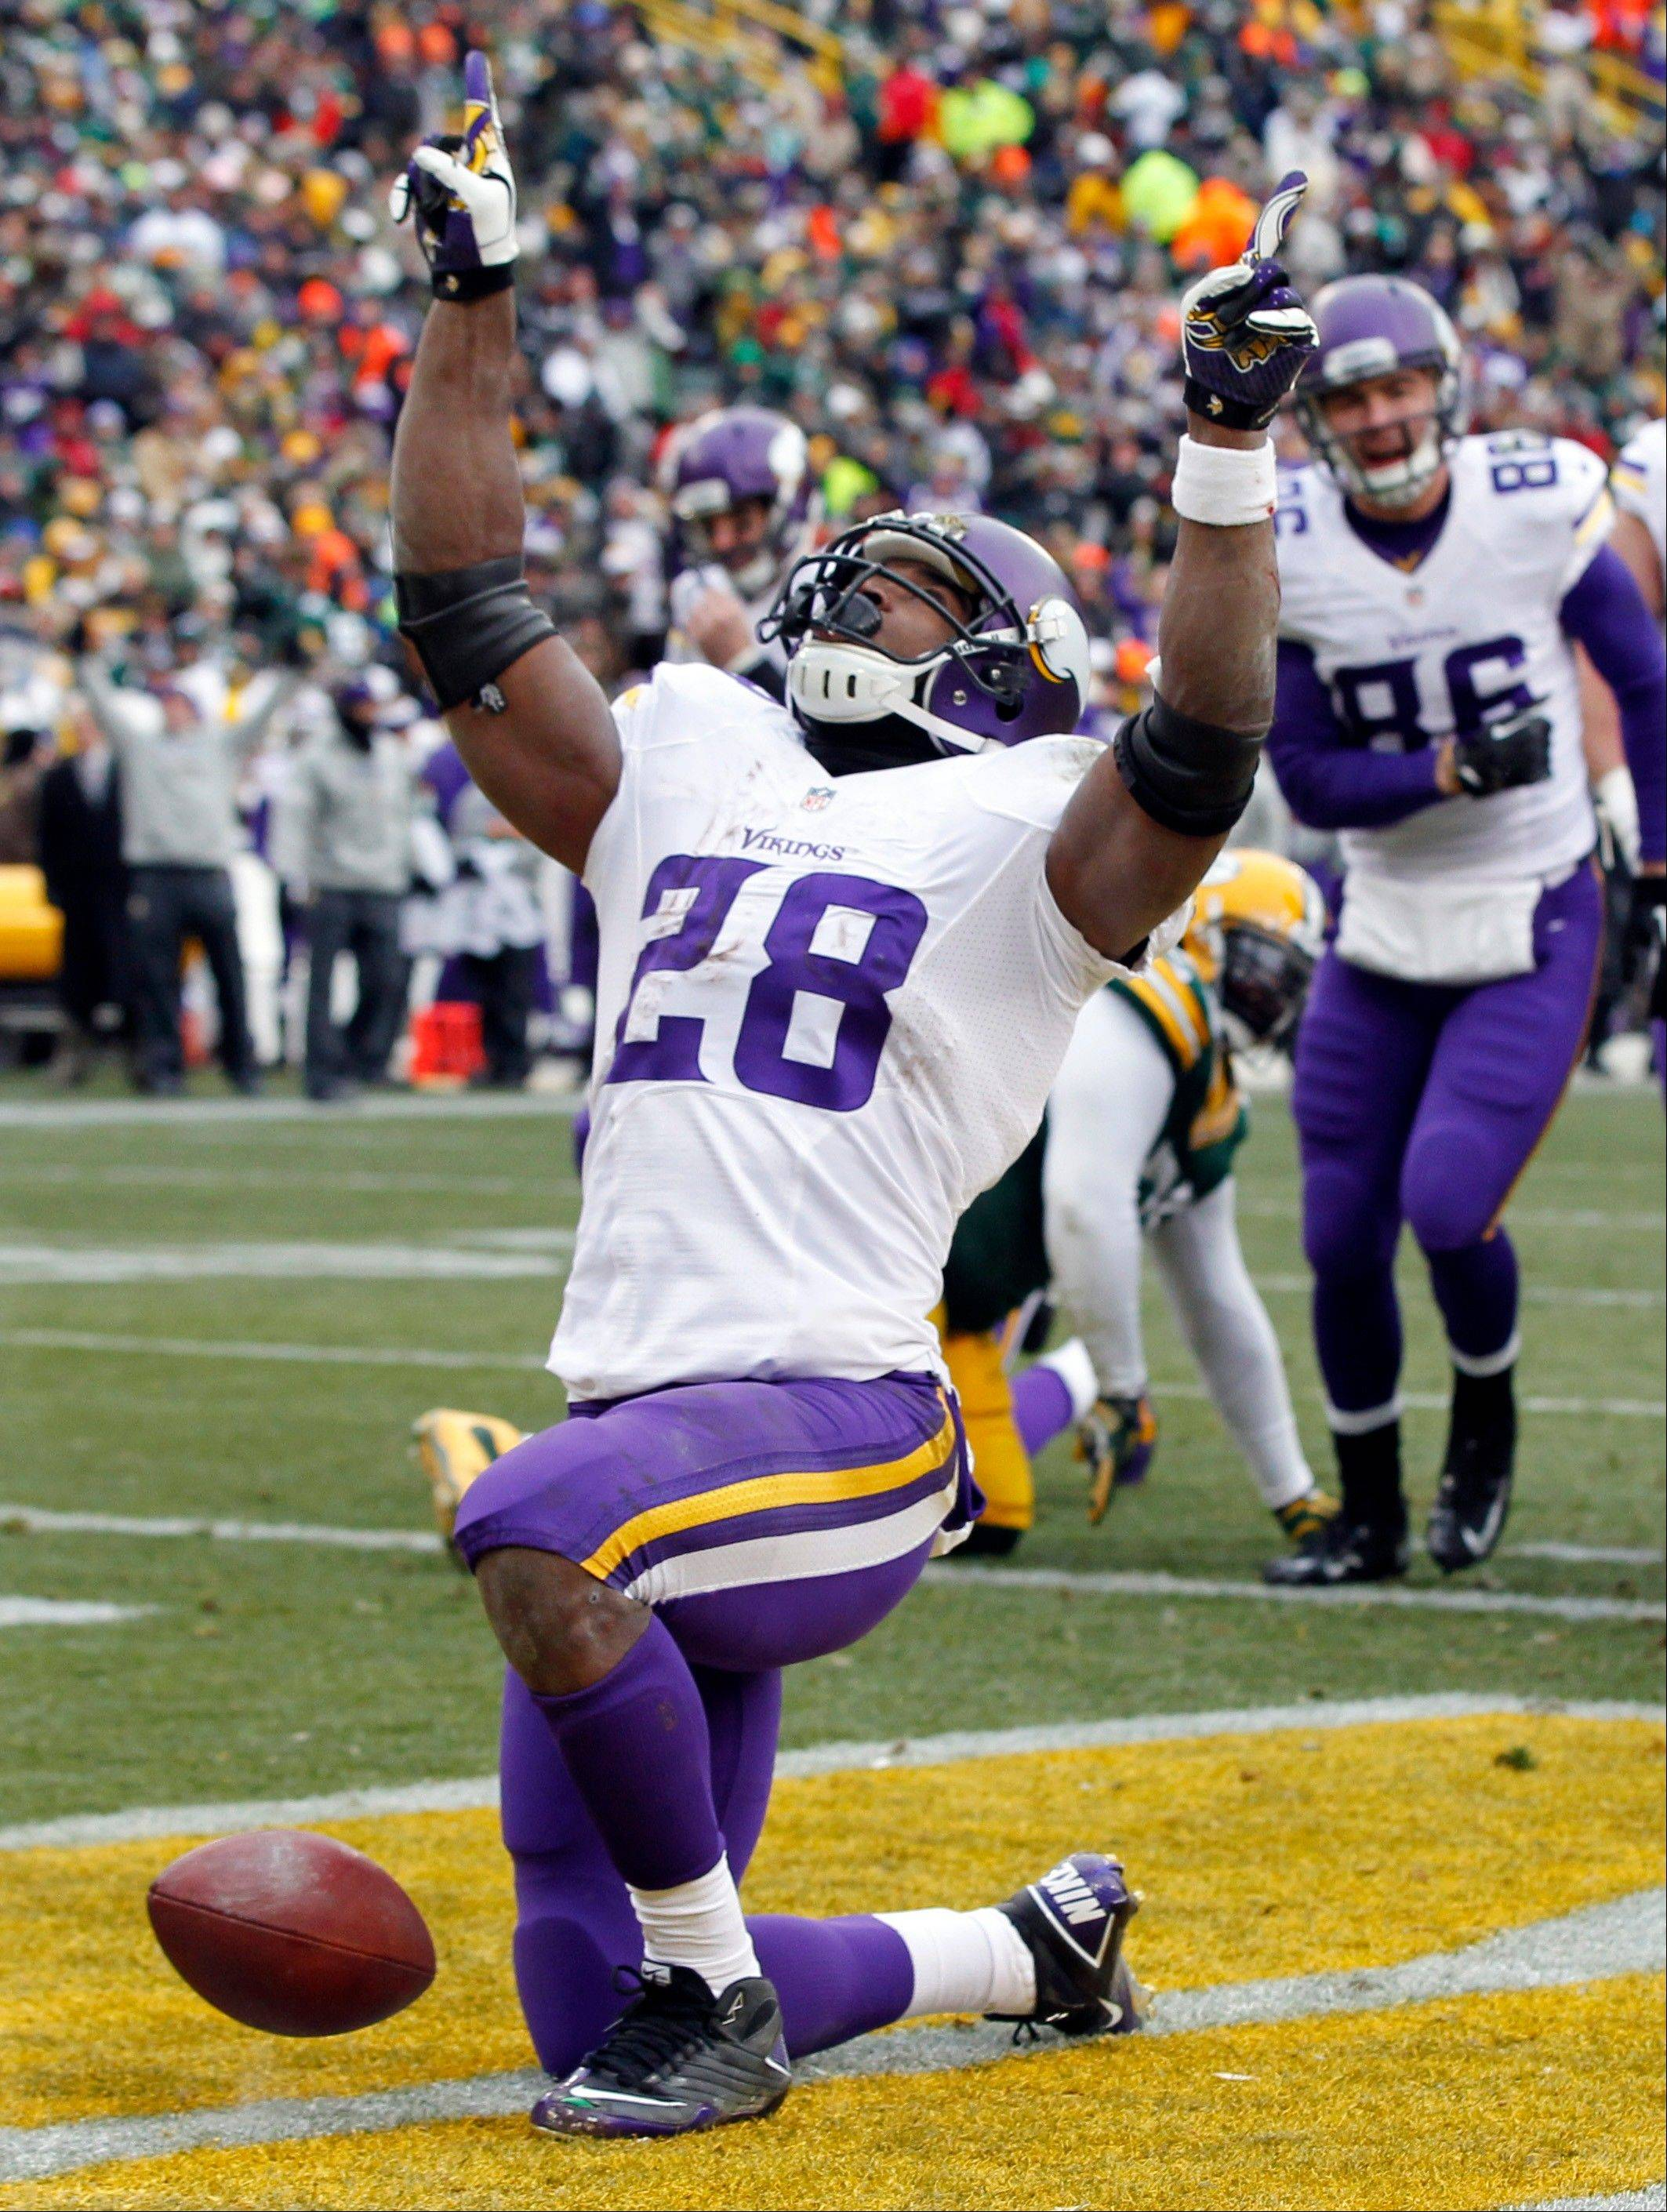 Stopping Vikings running back Adrian Peterson should be the sternest test yet for a Bears defense ranked last in the NFL against the rush.